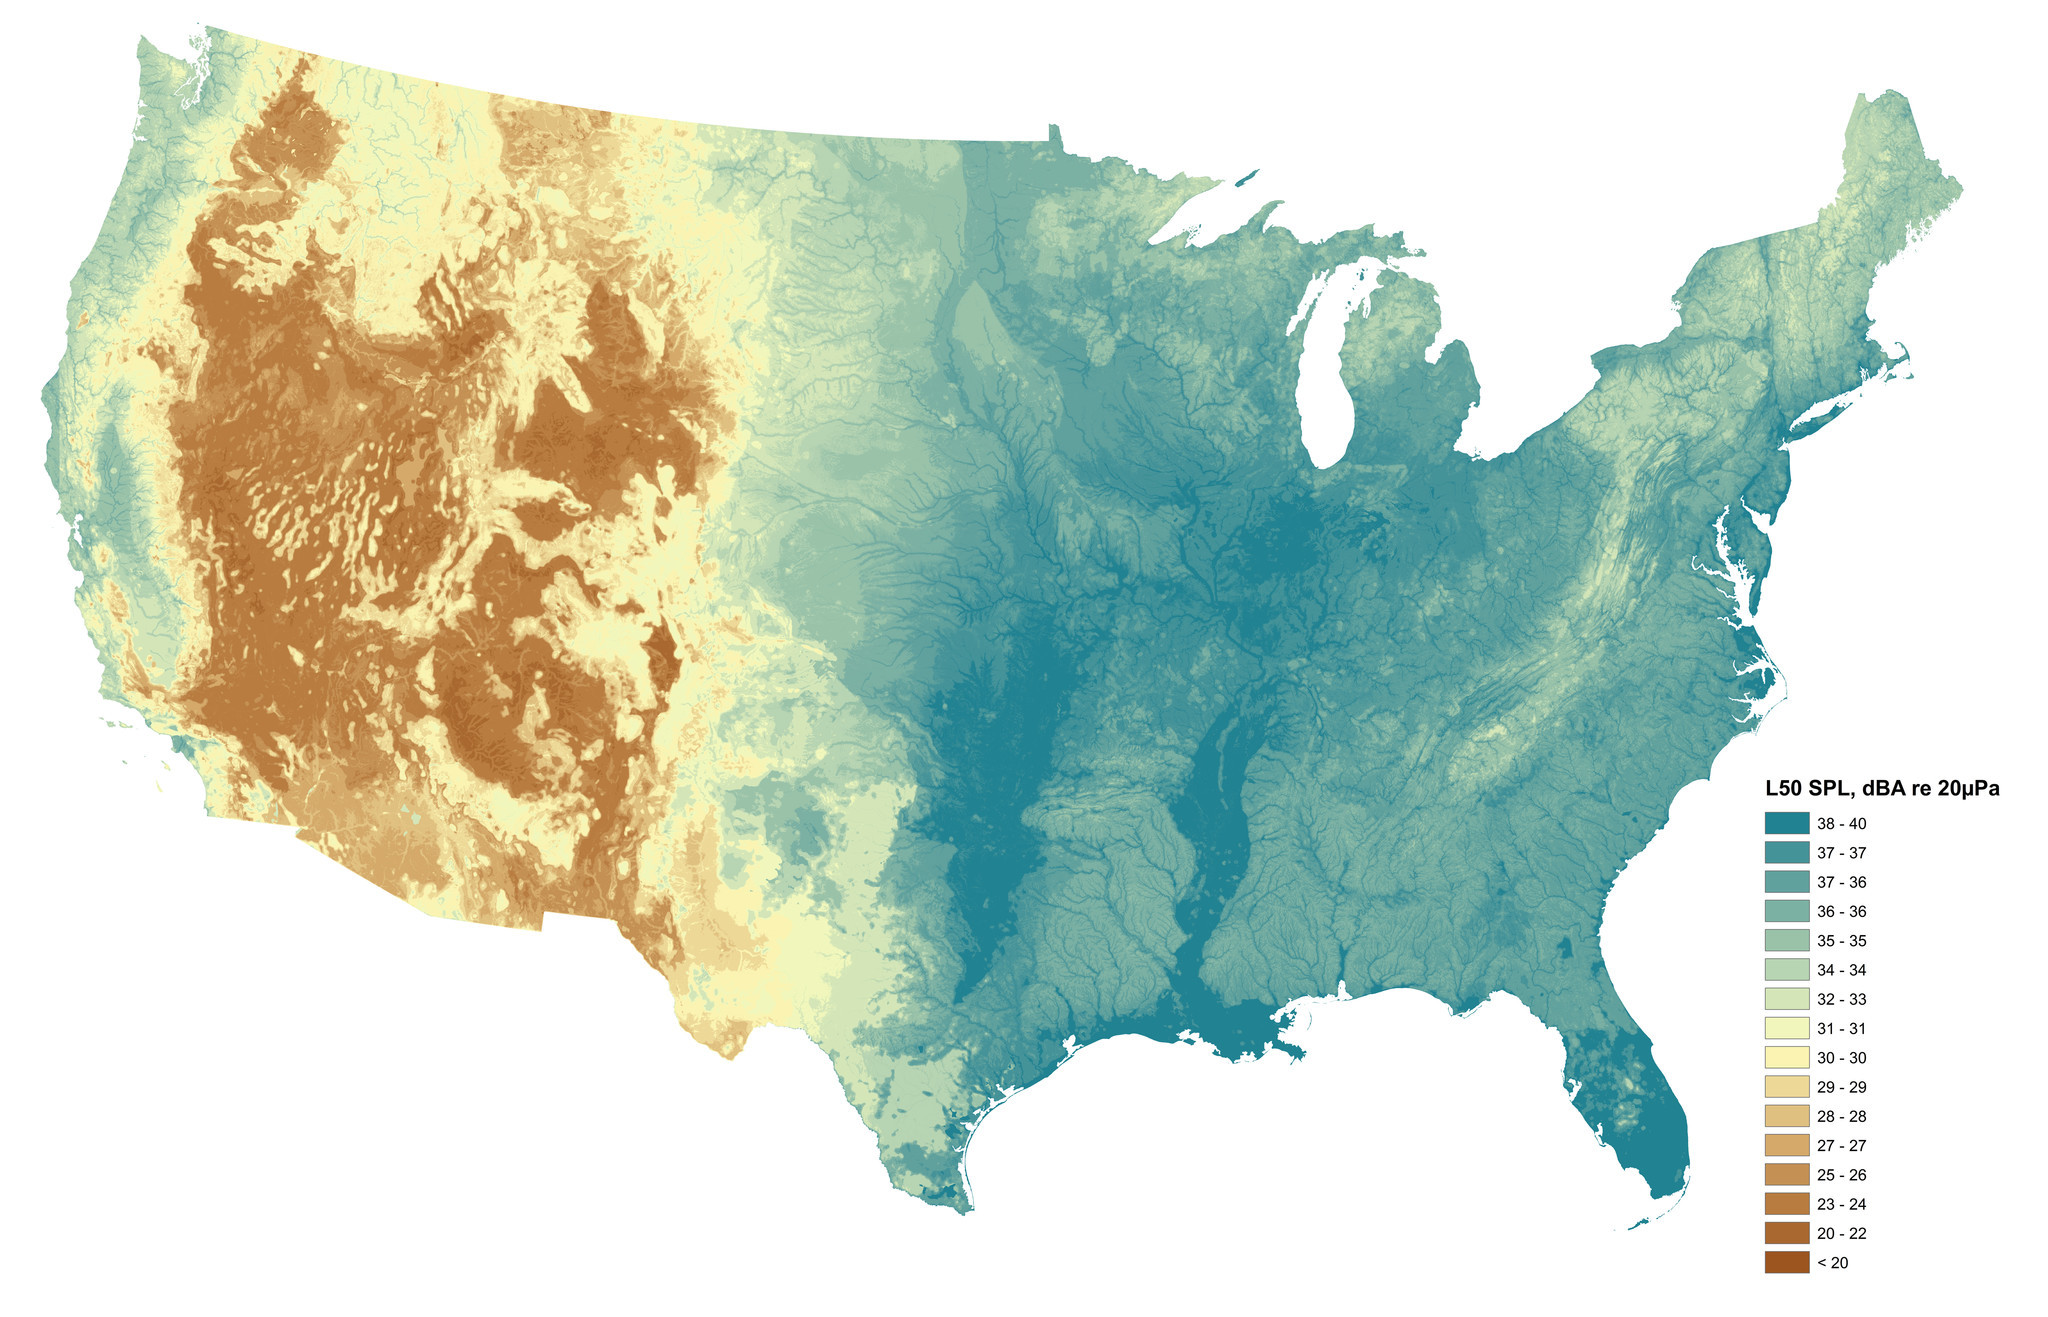 This map shows sound levels at natural conditions. Wetter areas with more vegetation tend to have higher sound levels. This is due to the sounds of wind blowing through plants, flowing water and more animals such as birds and frogs making vocalizations.